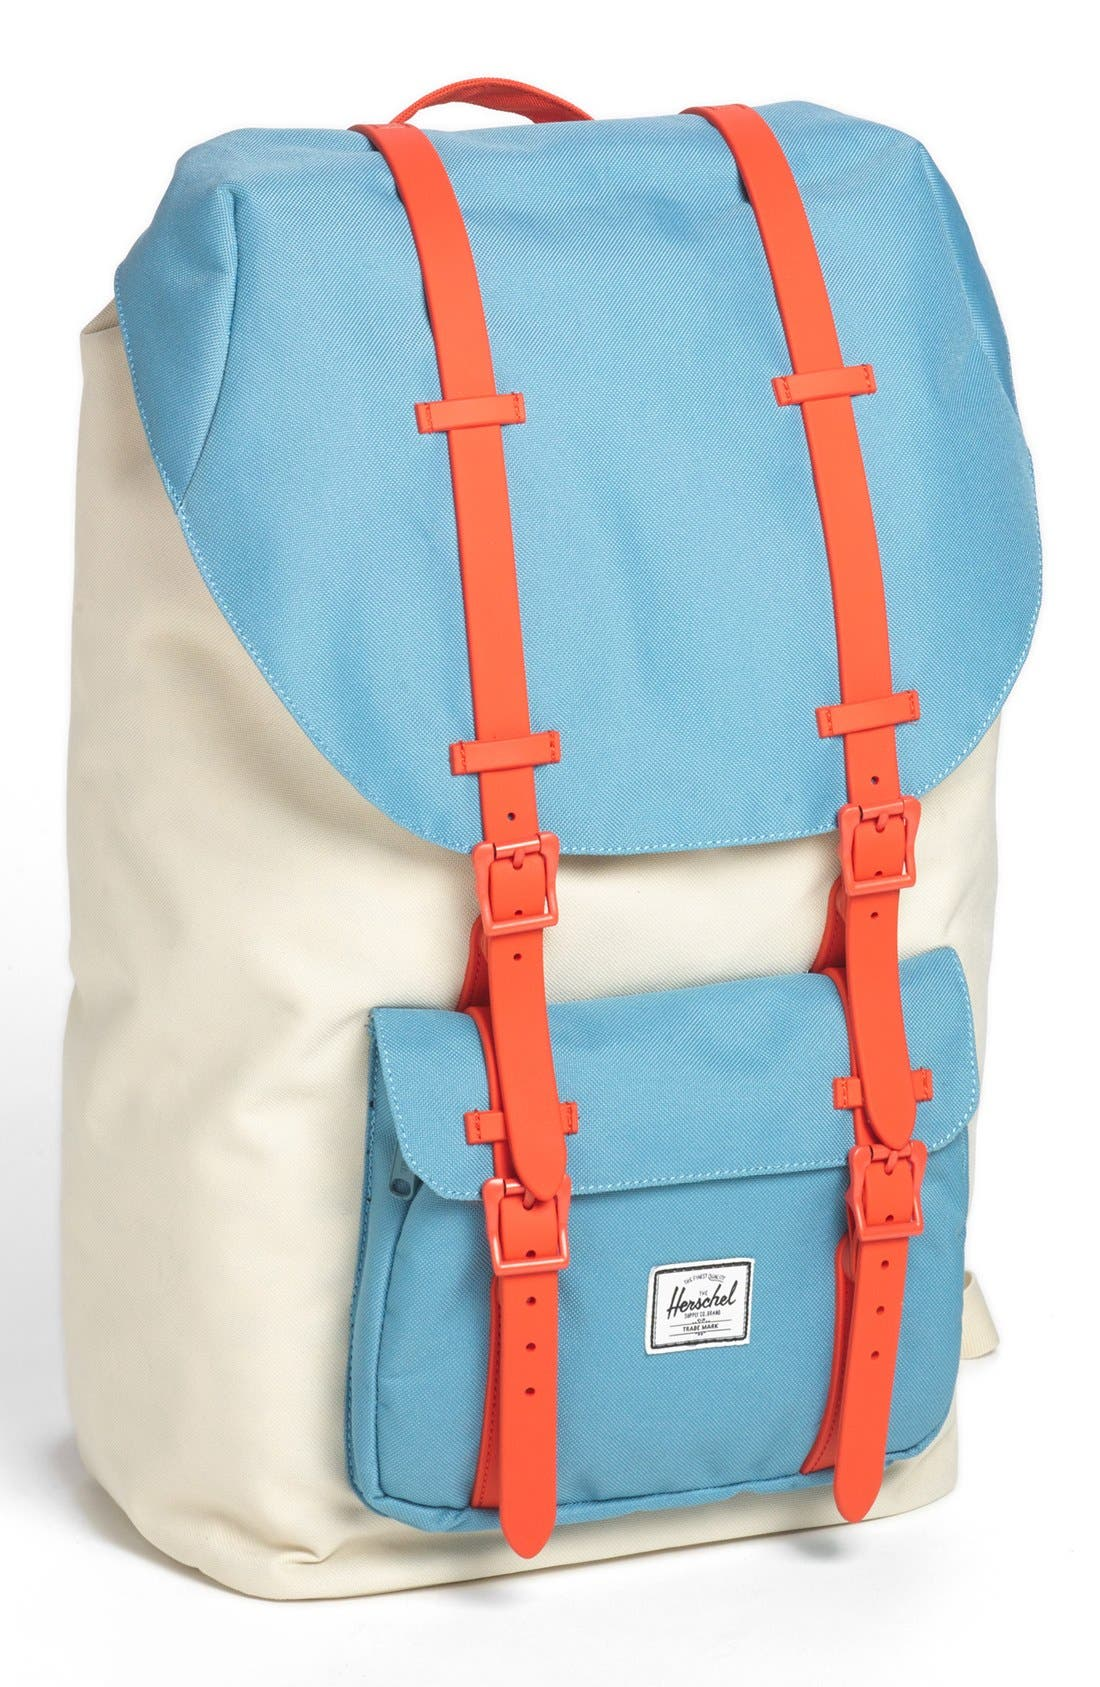 Alternate Image 1 Selected - Herschel Supply Co. 'Little America - Rad Cars with Rad Surfboards Collection' Backpack